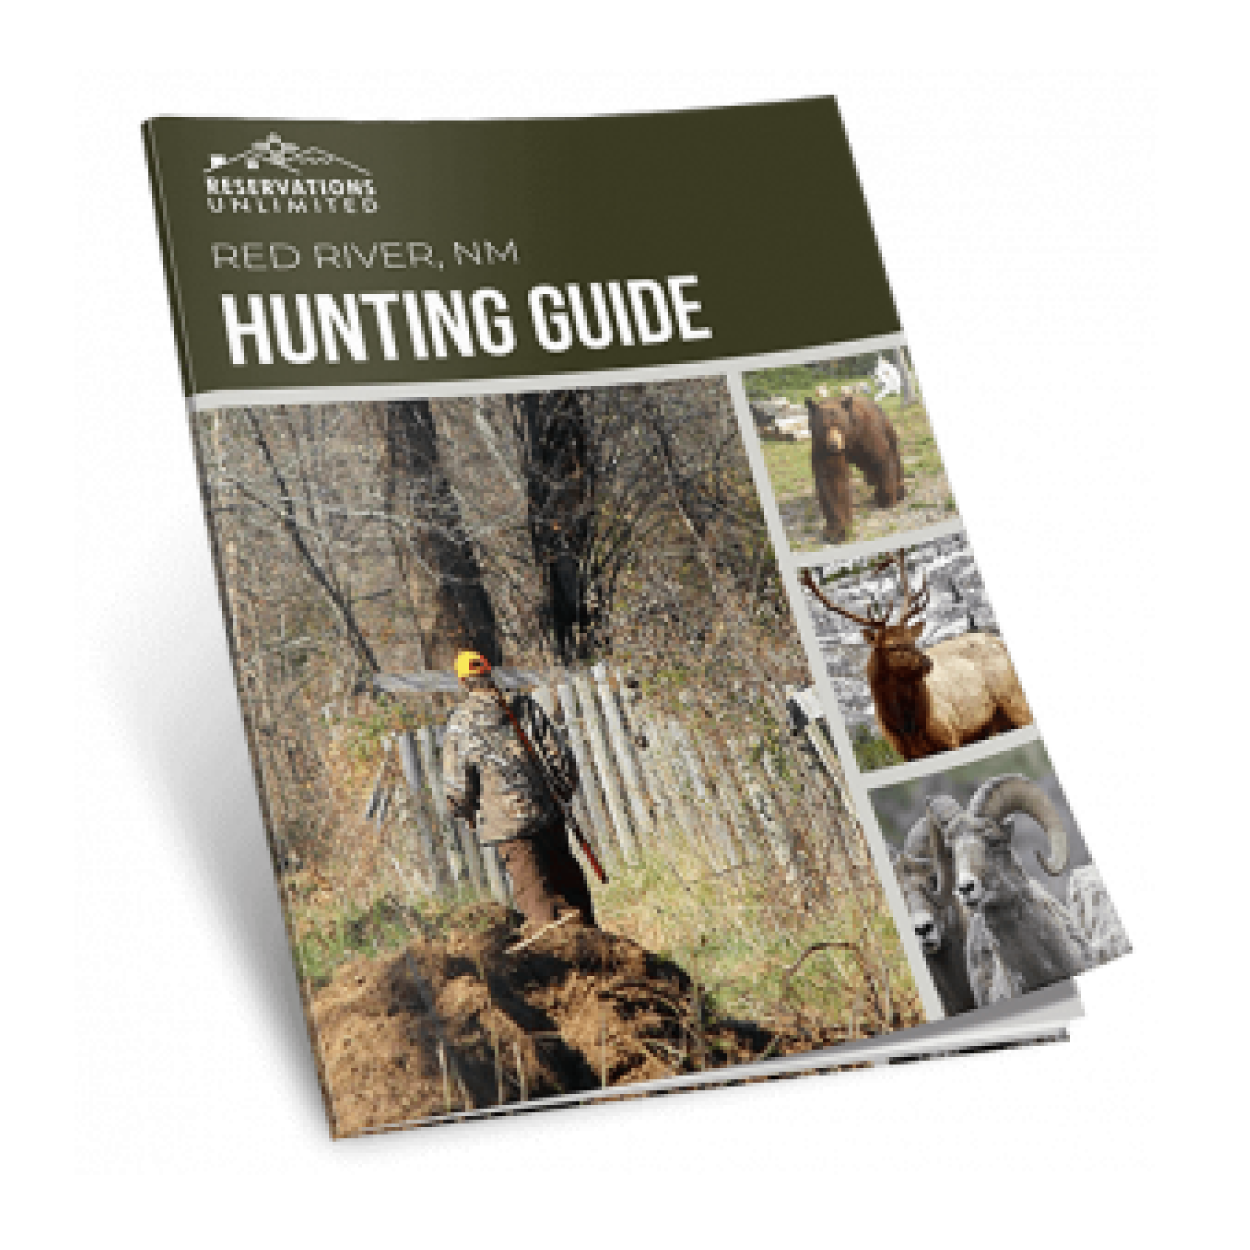 Download the Red River Hunting Guide